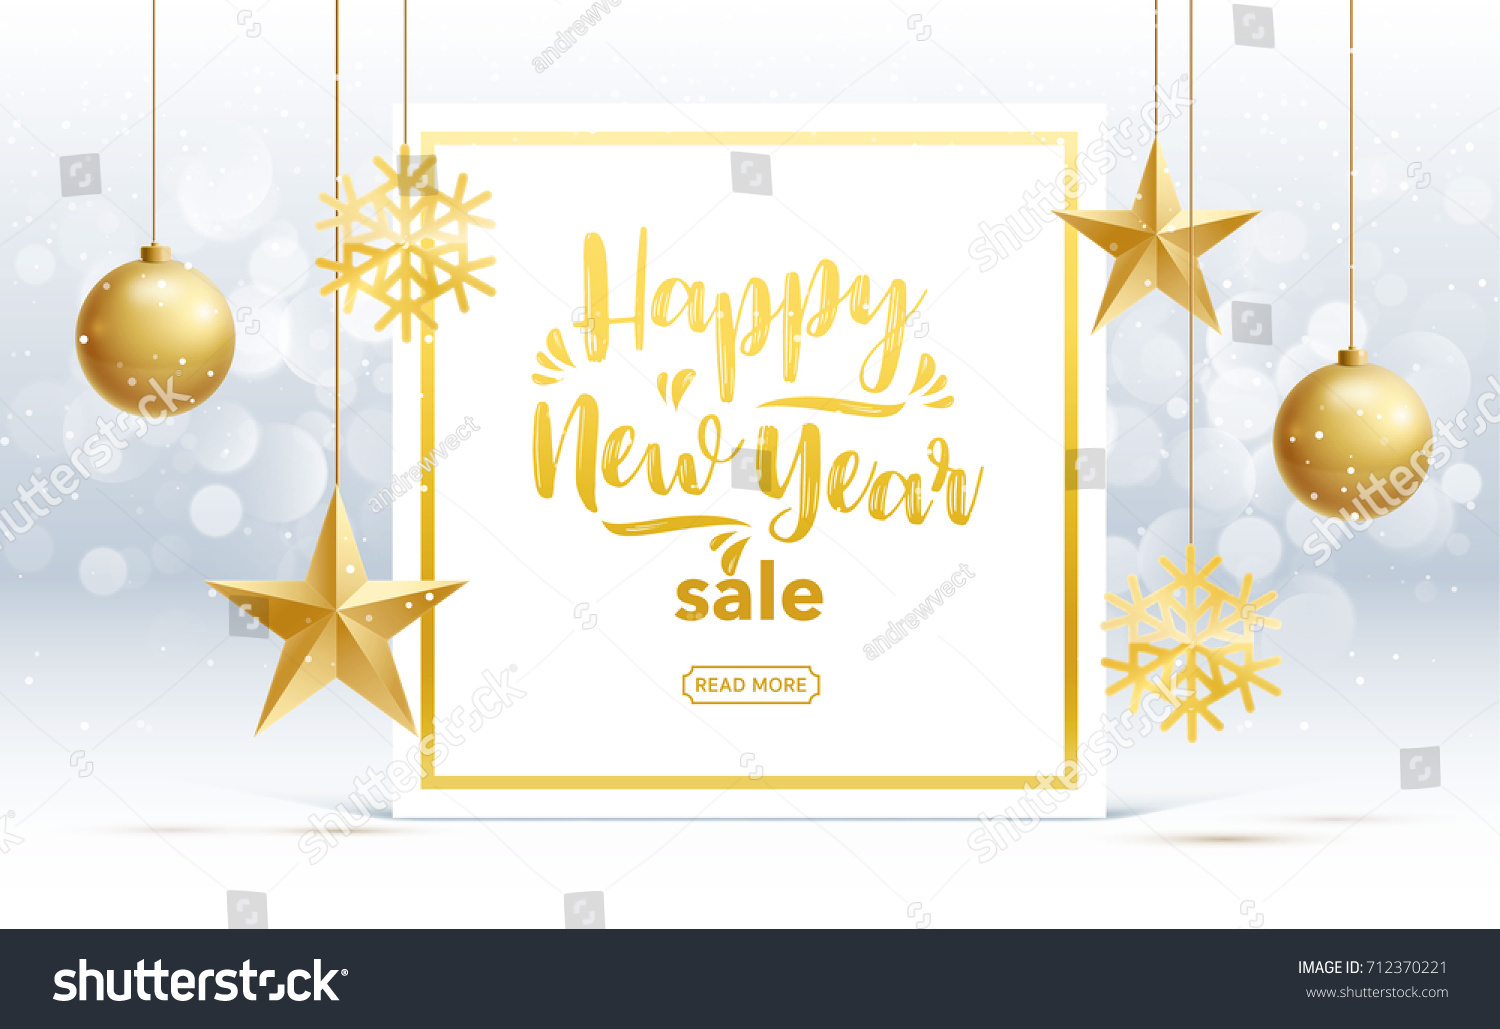 Vector Happy New Year 2018 Sale Stock Vector 712370221 - Shutterstock